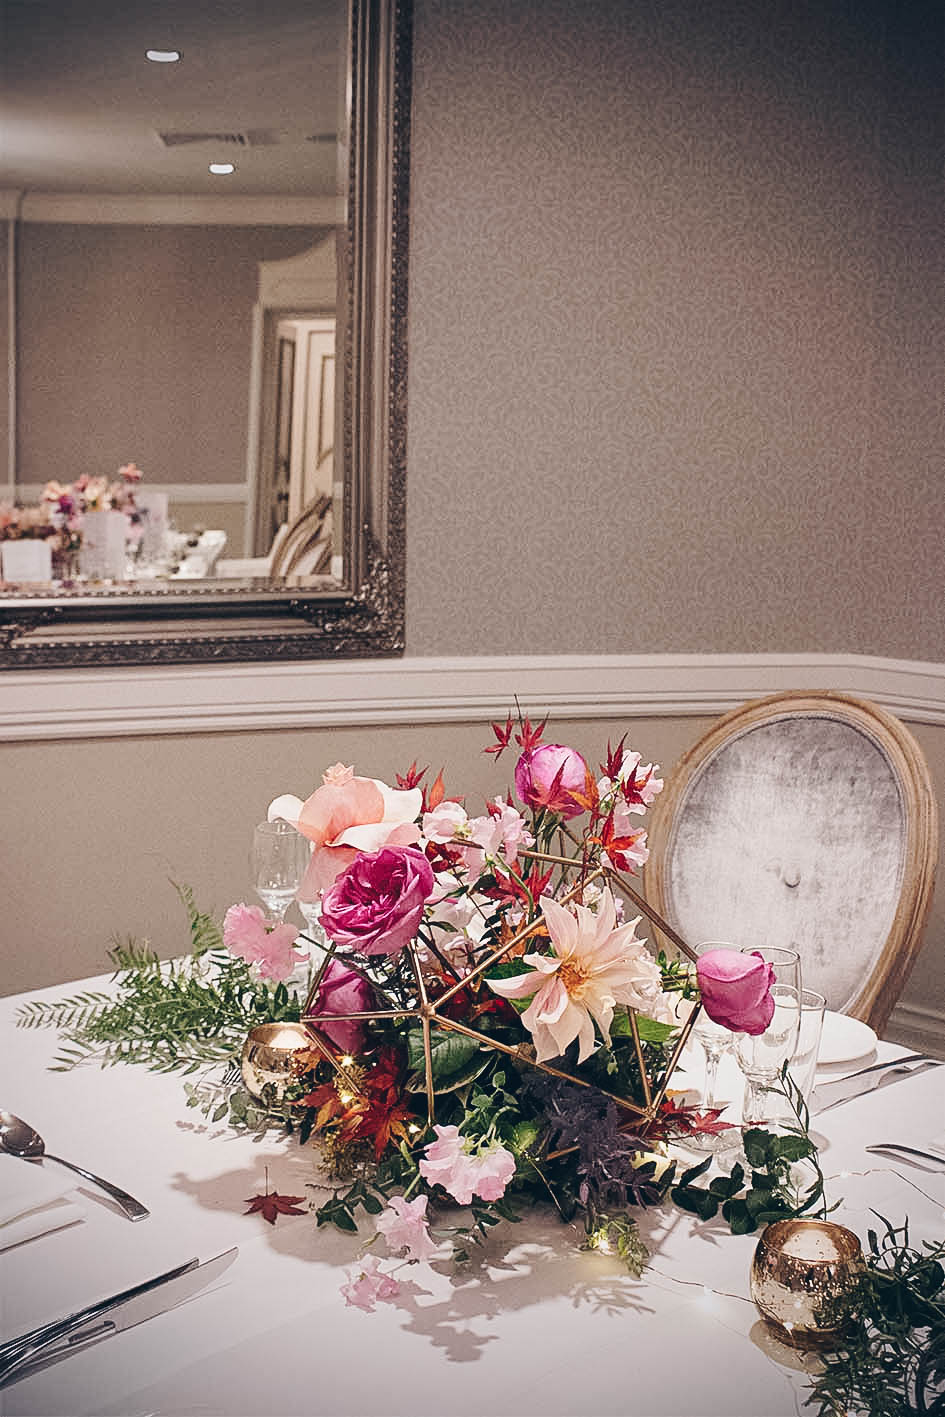 sydney-event-oatlands-house-flowers-table-centrepieces-arrangements.jpg